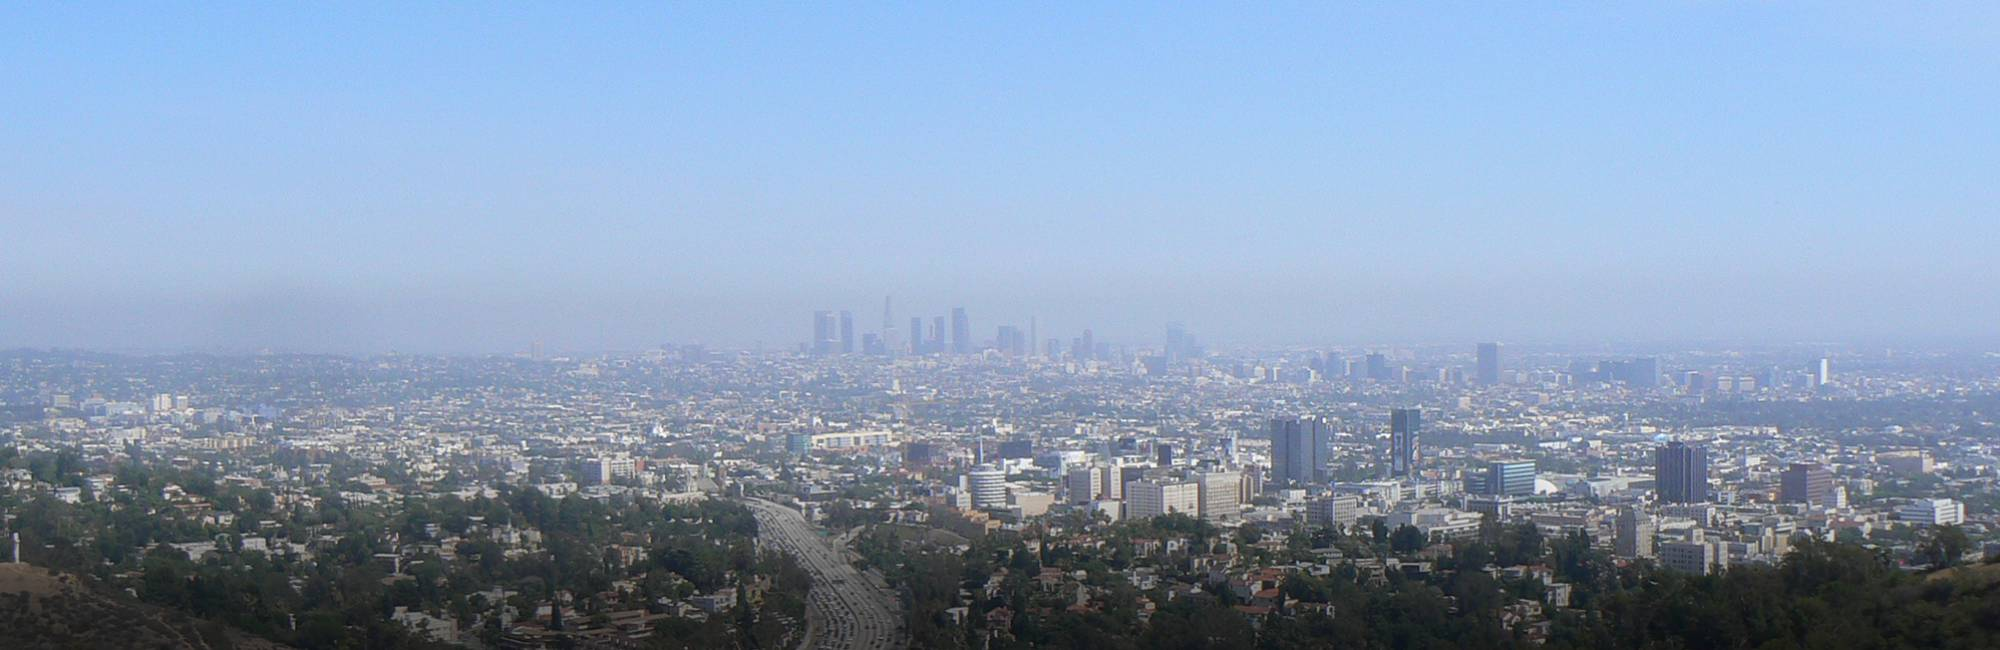 Los Angeles skyline with smog